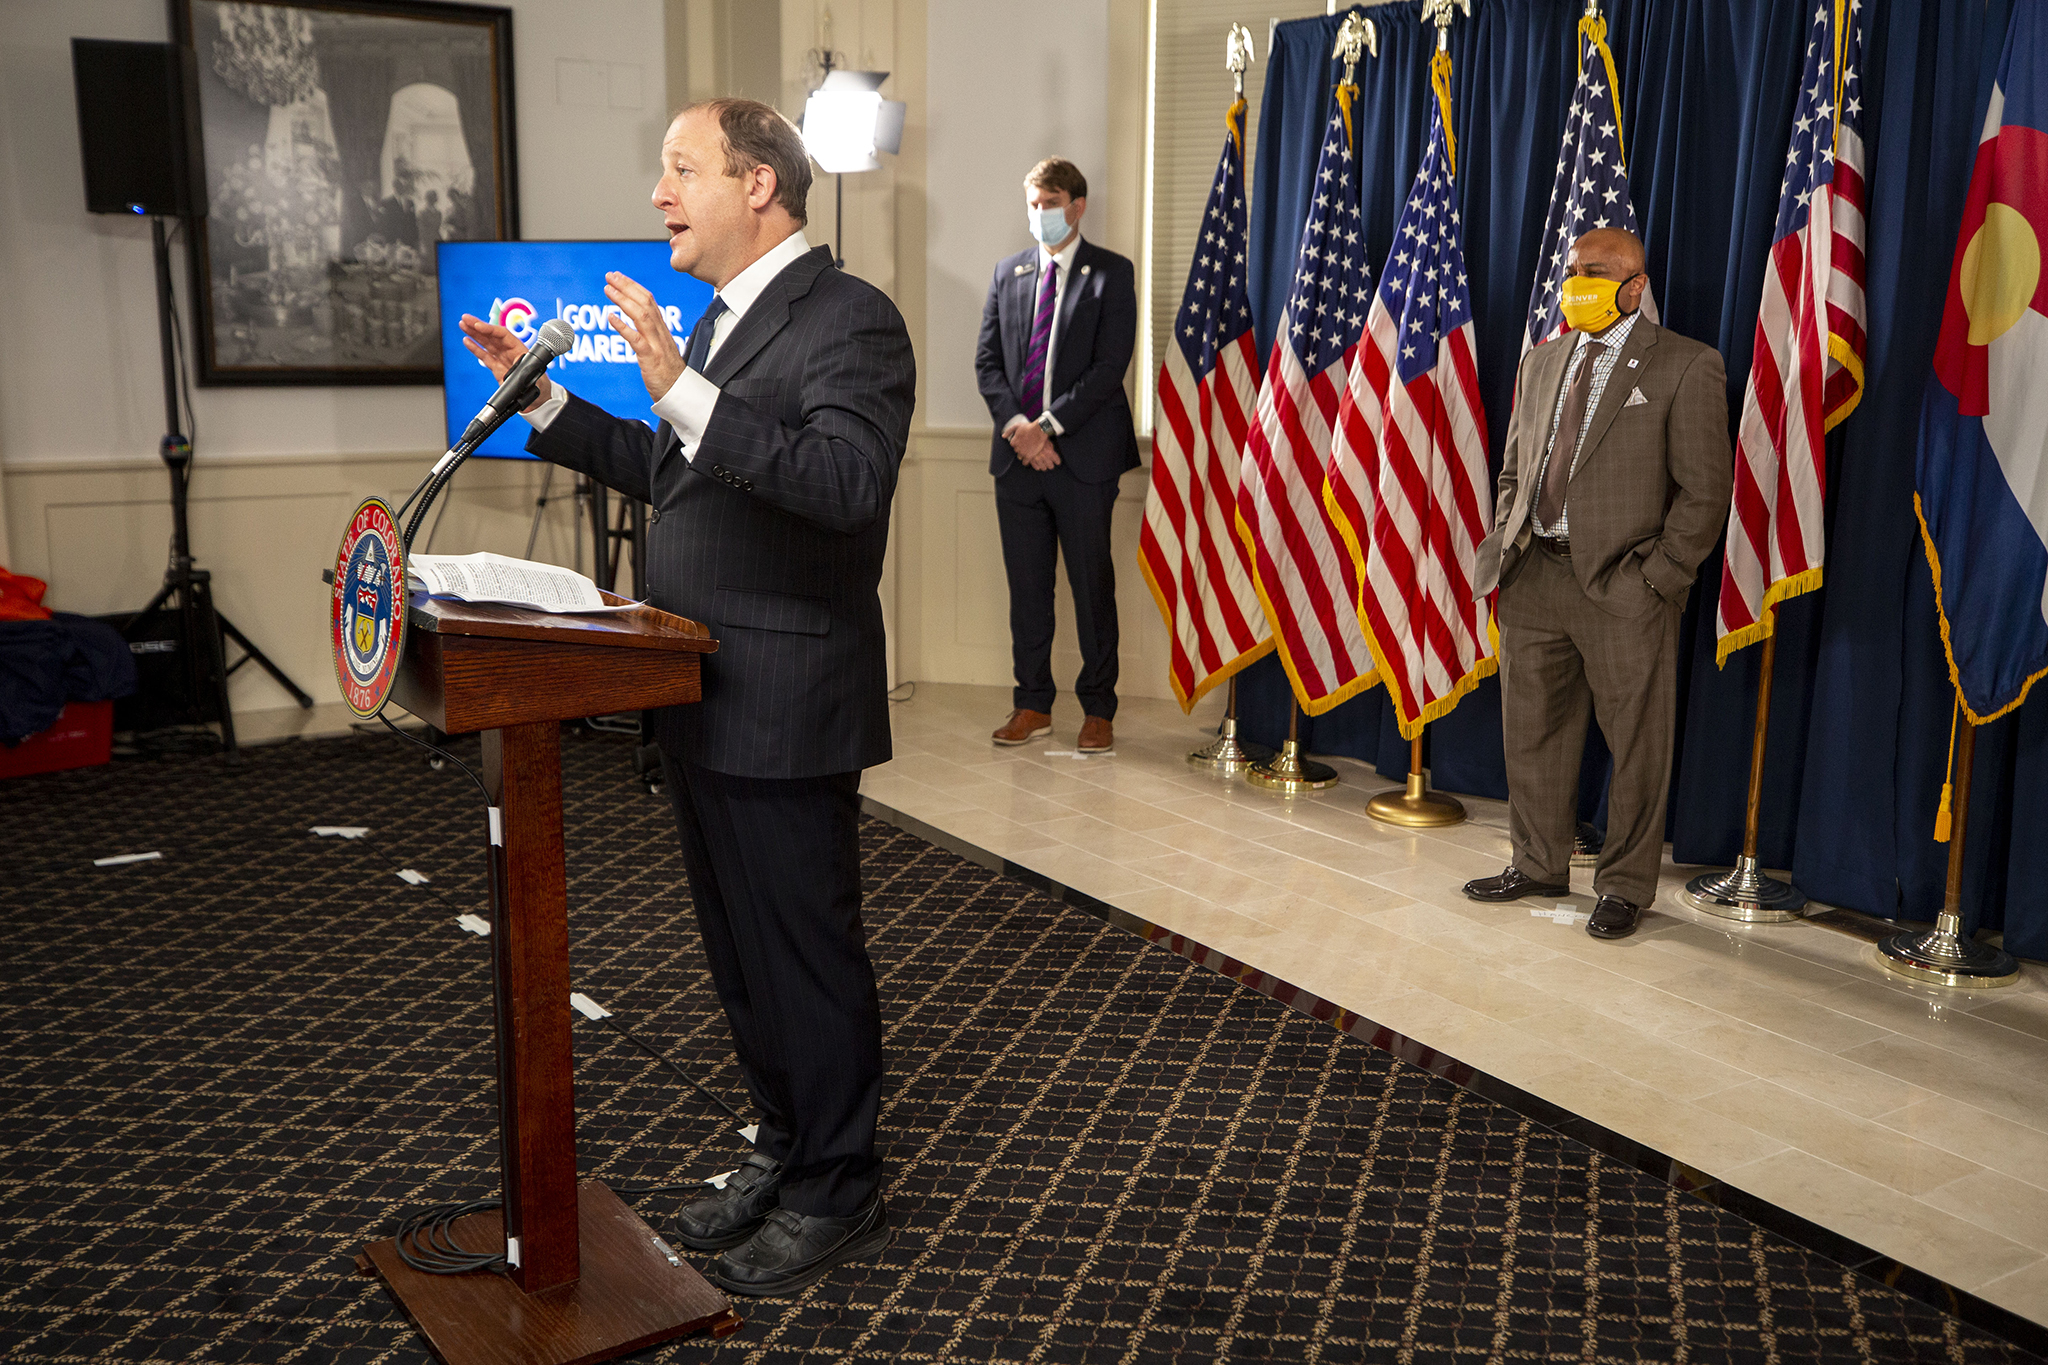 Gov. Jared Polis holds a press conference at the Governor's Mansion in Capitol Hill, Nov. 17, 2020.